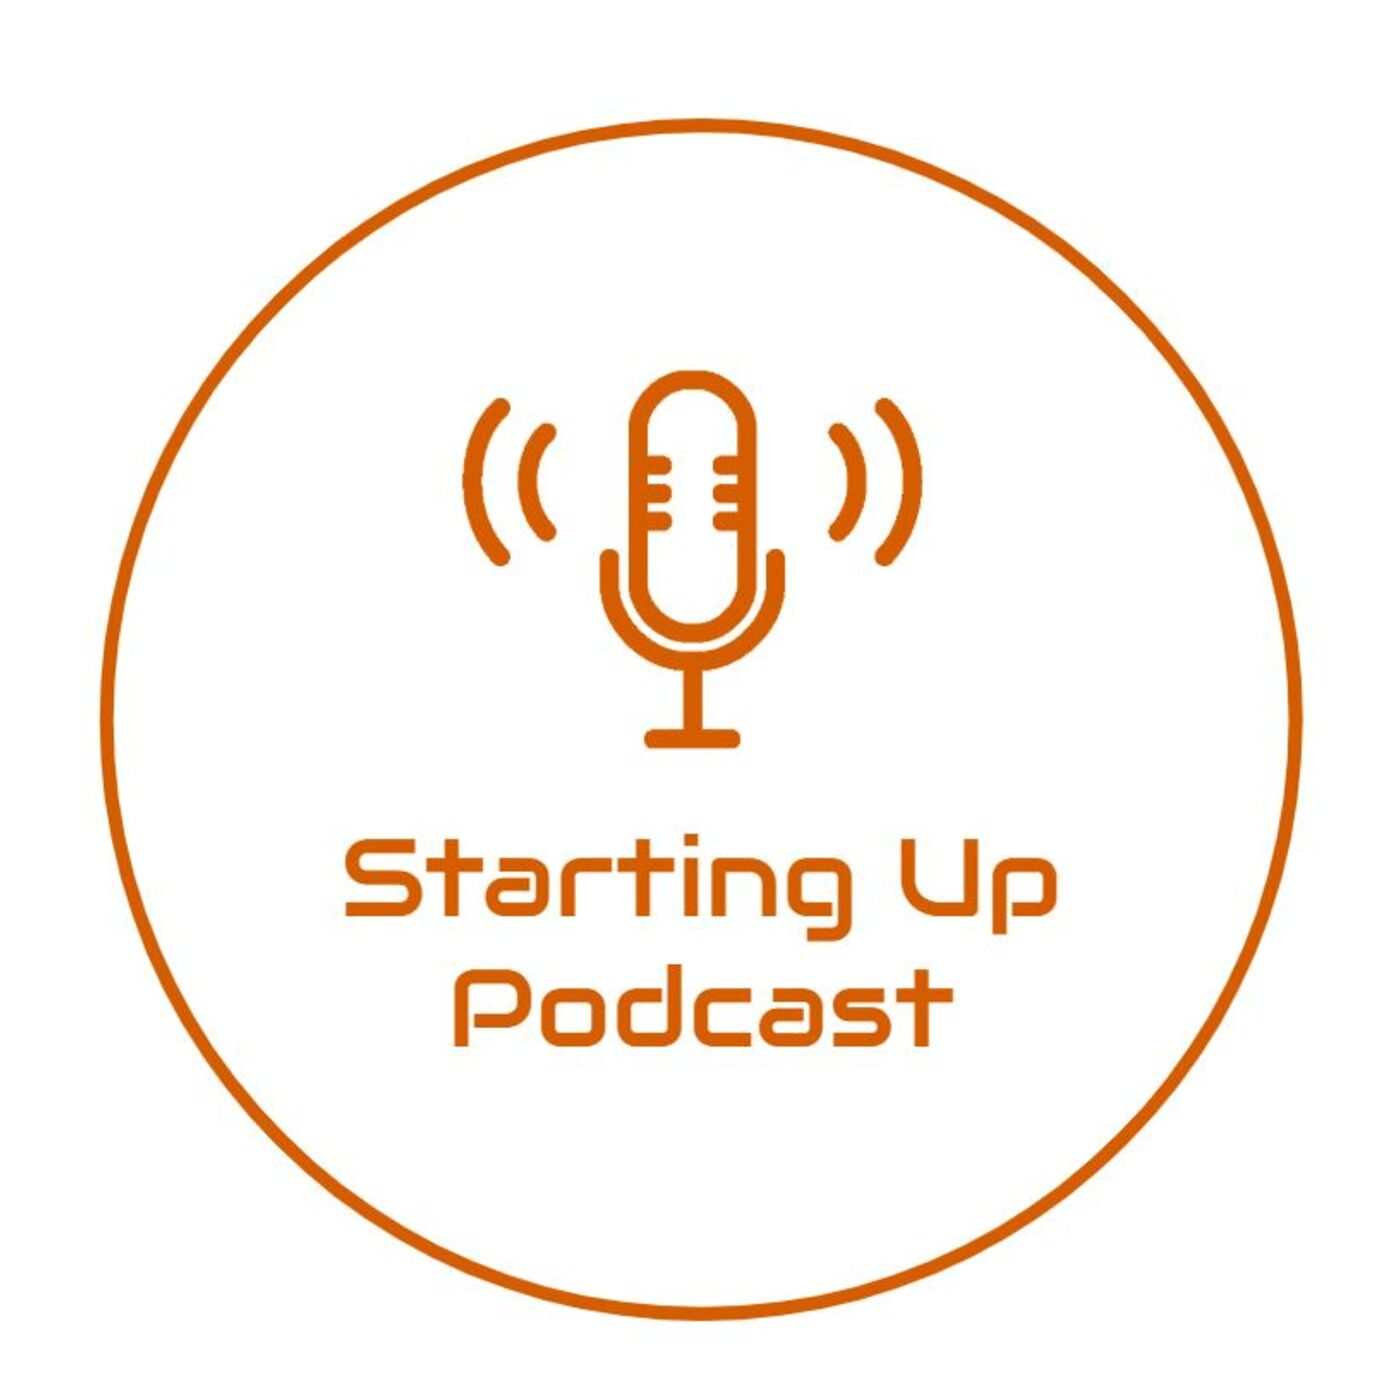 Starting Up Episode #1: Why entrepreneurship in college?